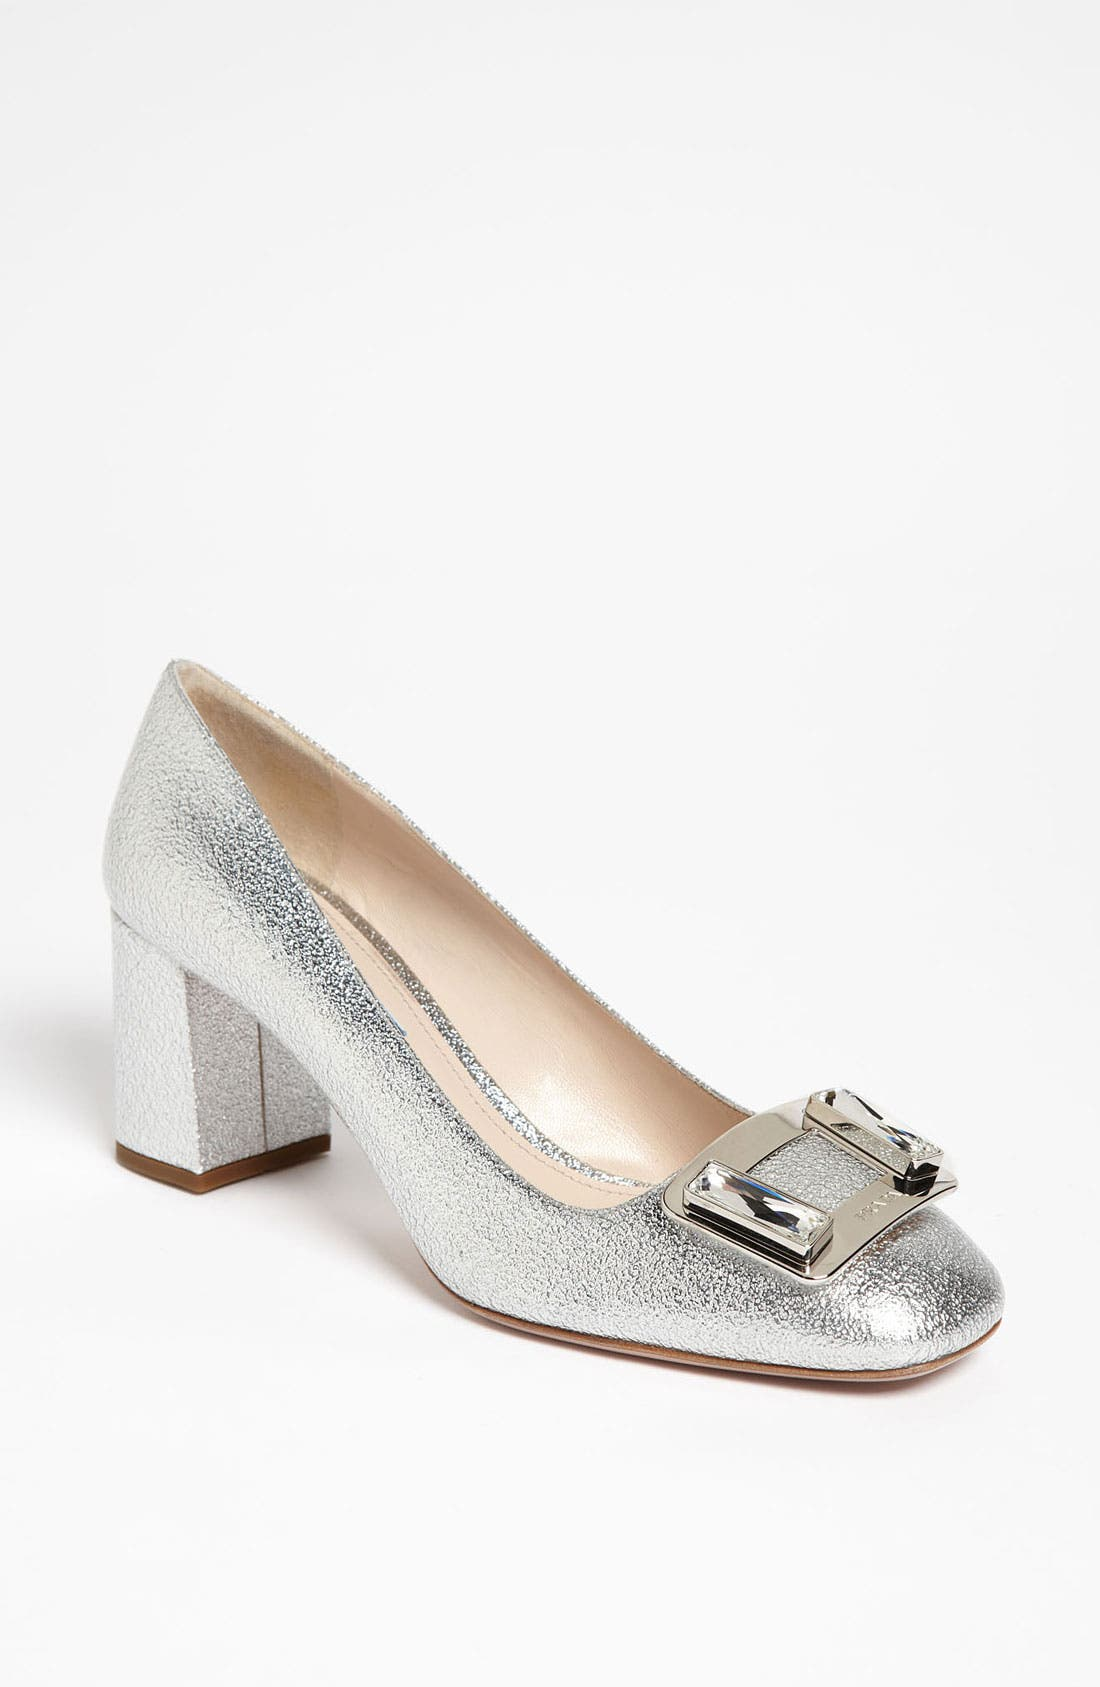 Main Image - Prada Crystal Metal Buckle Pump